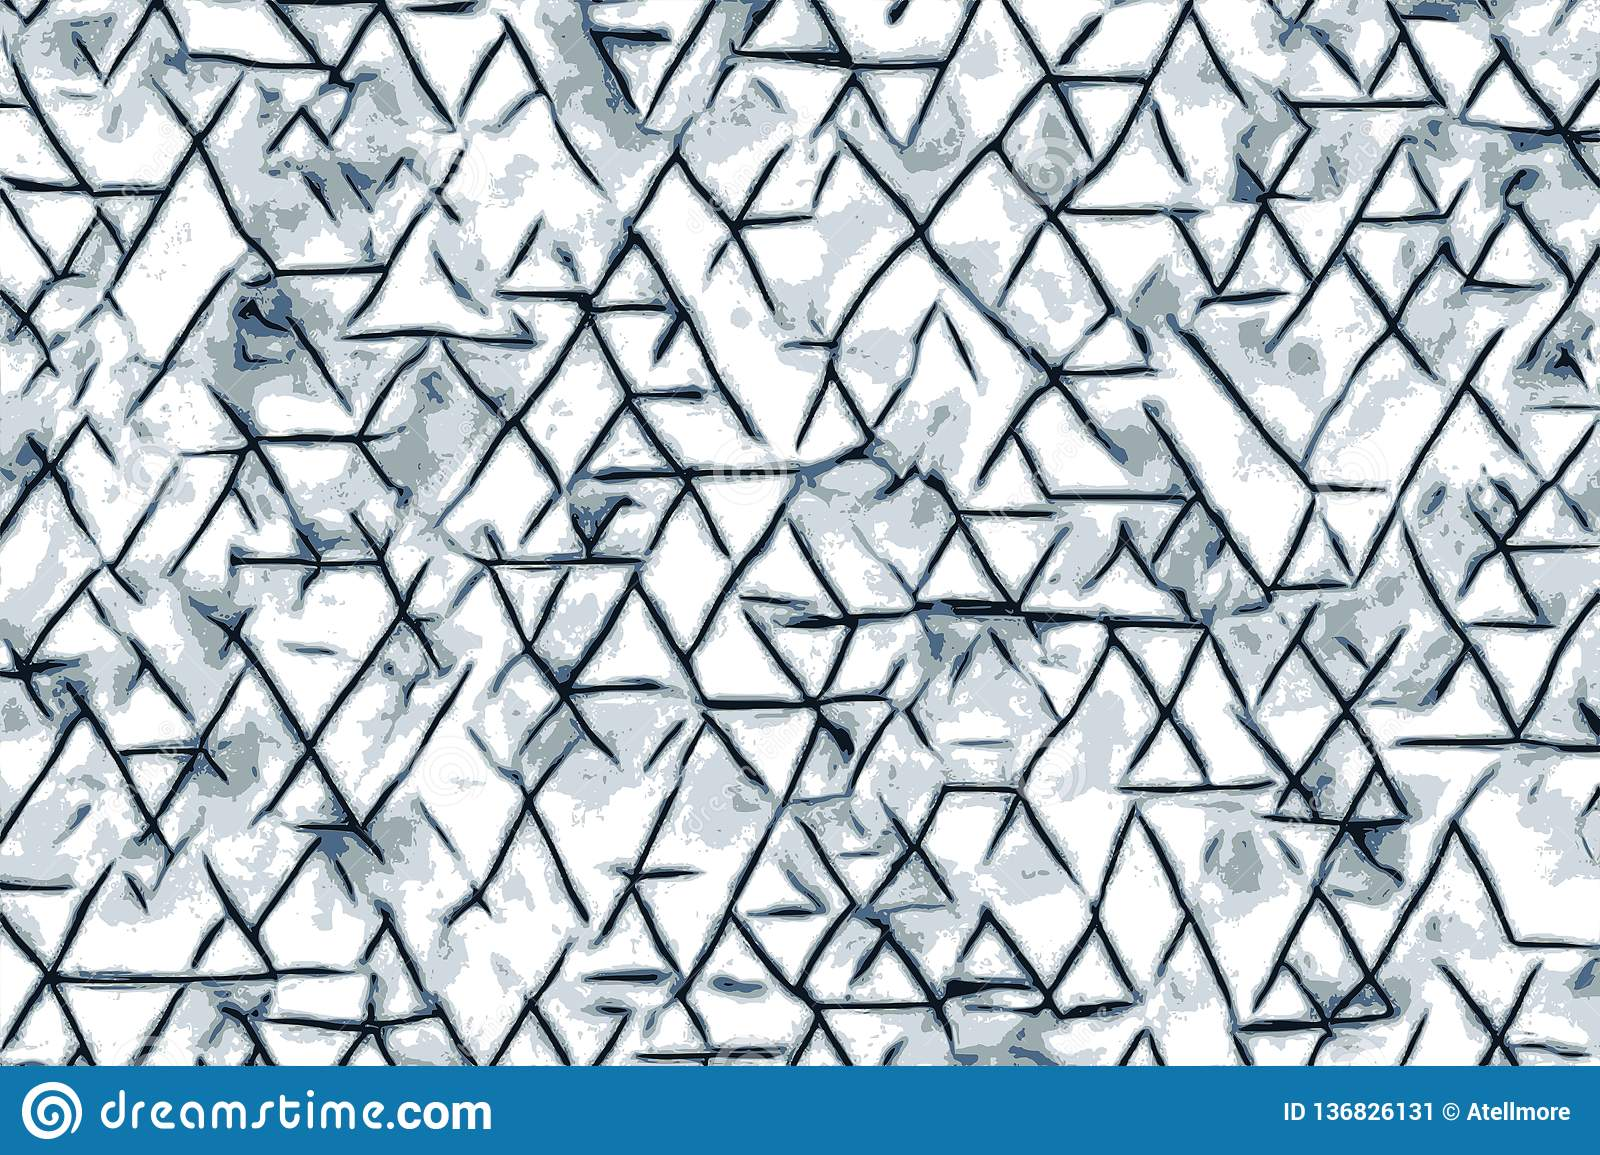 Blue triangle shapes and abstract drawings for a background